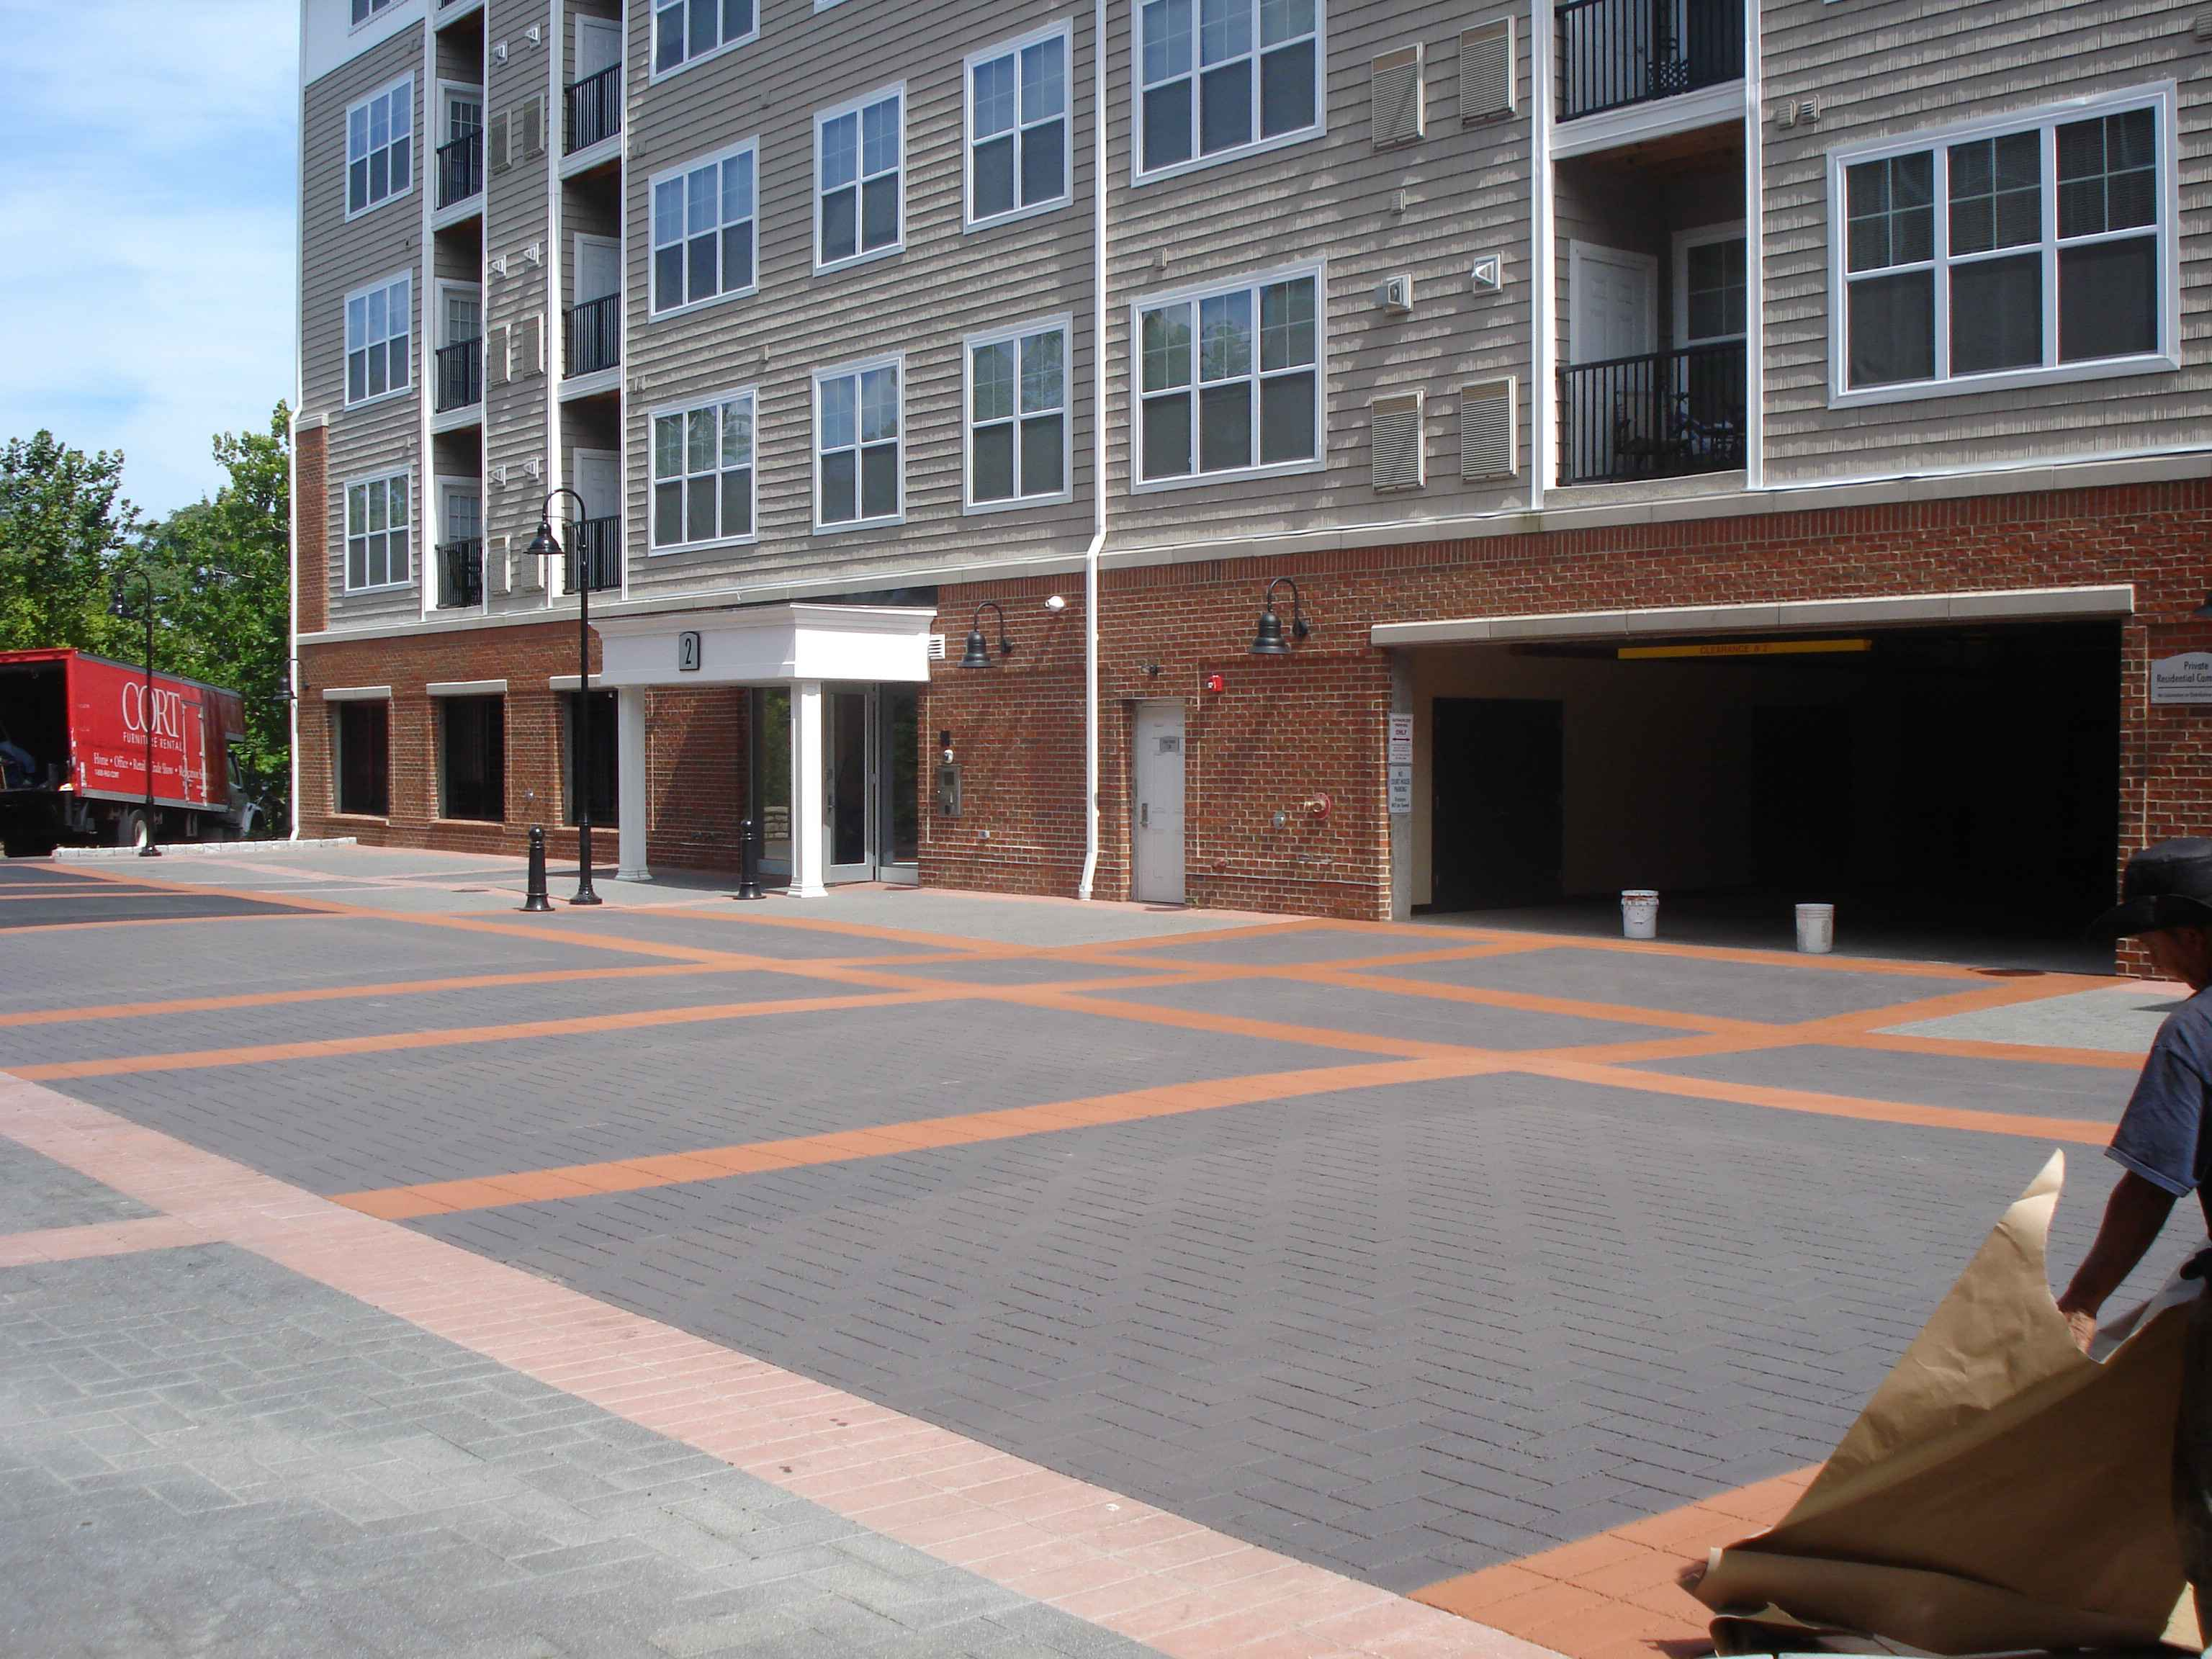 avalon yonkers paving concept inc pattern paving products